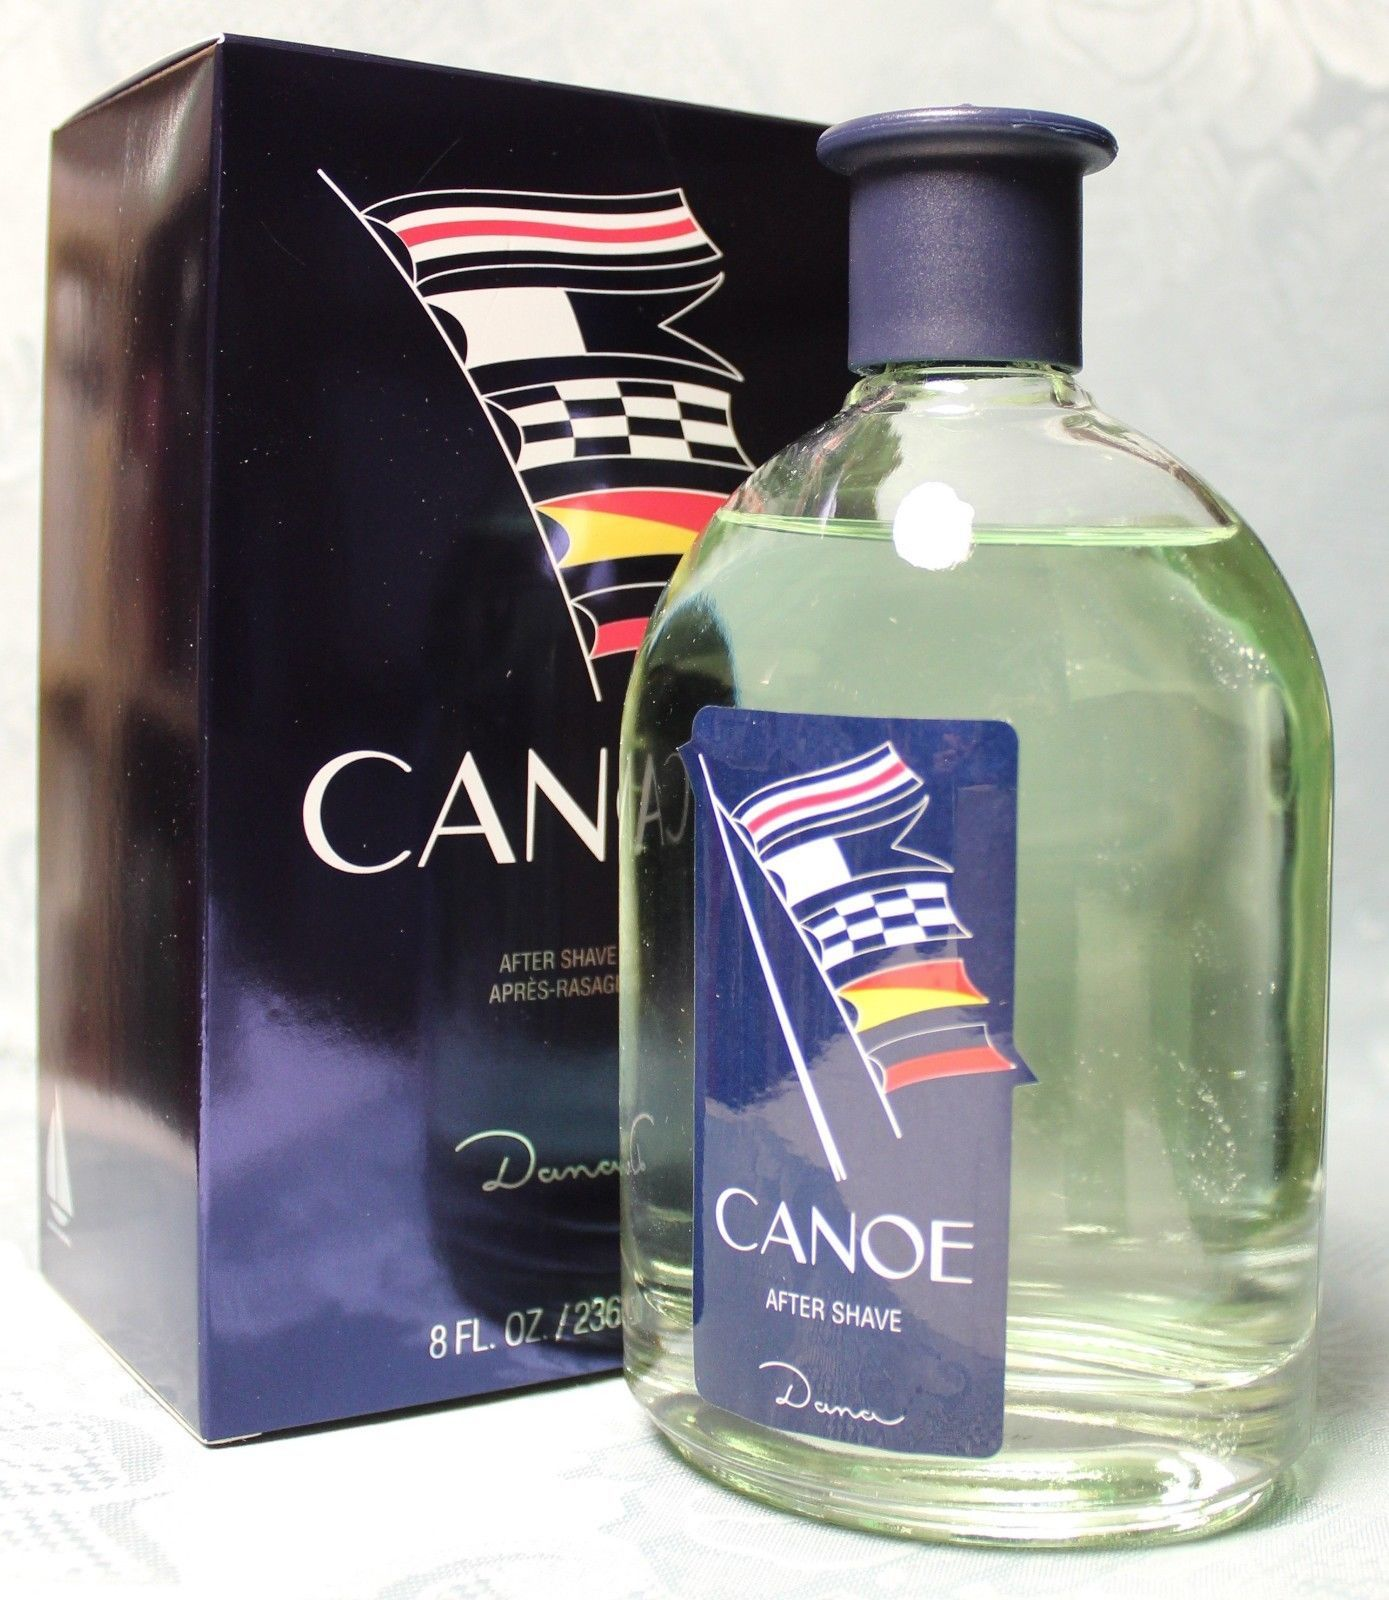 Canoe By Dana 8oz /240ml After Shave SPLASH (Old Discontinued Packing)